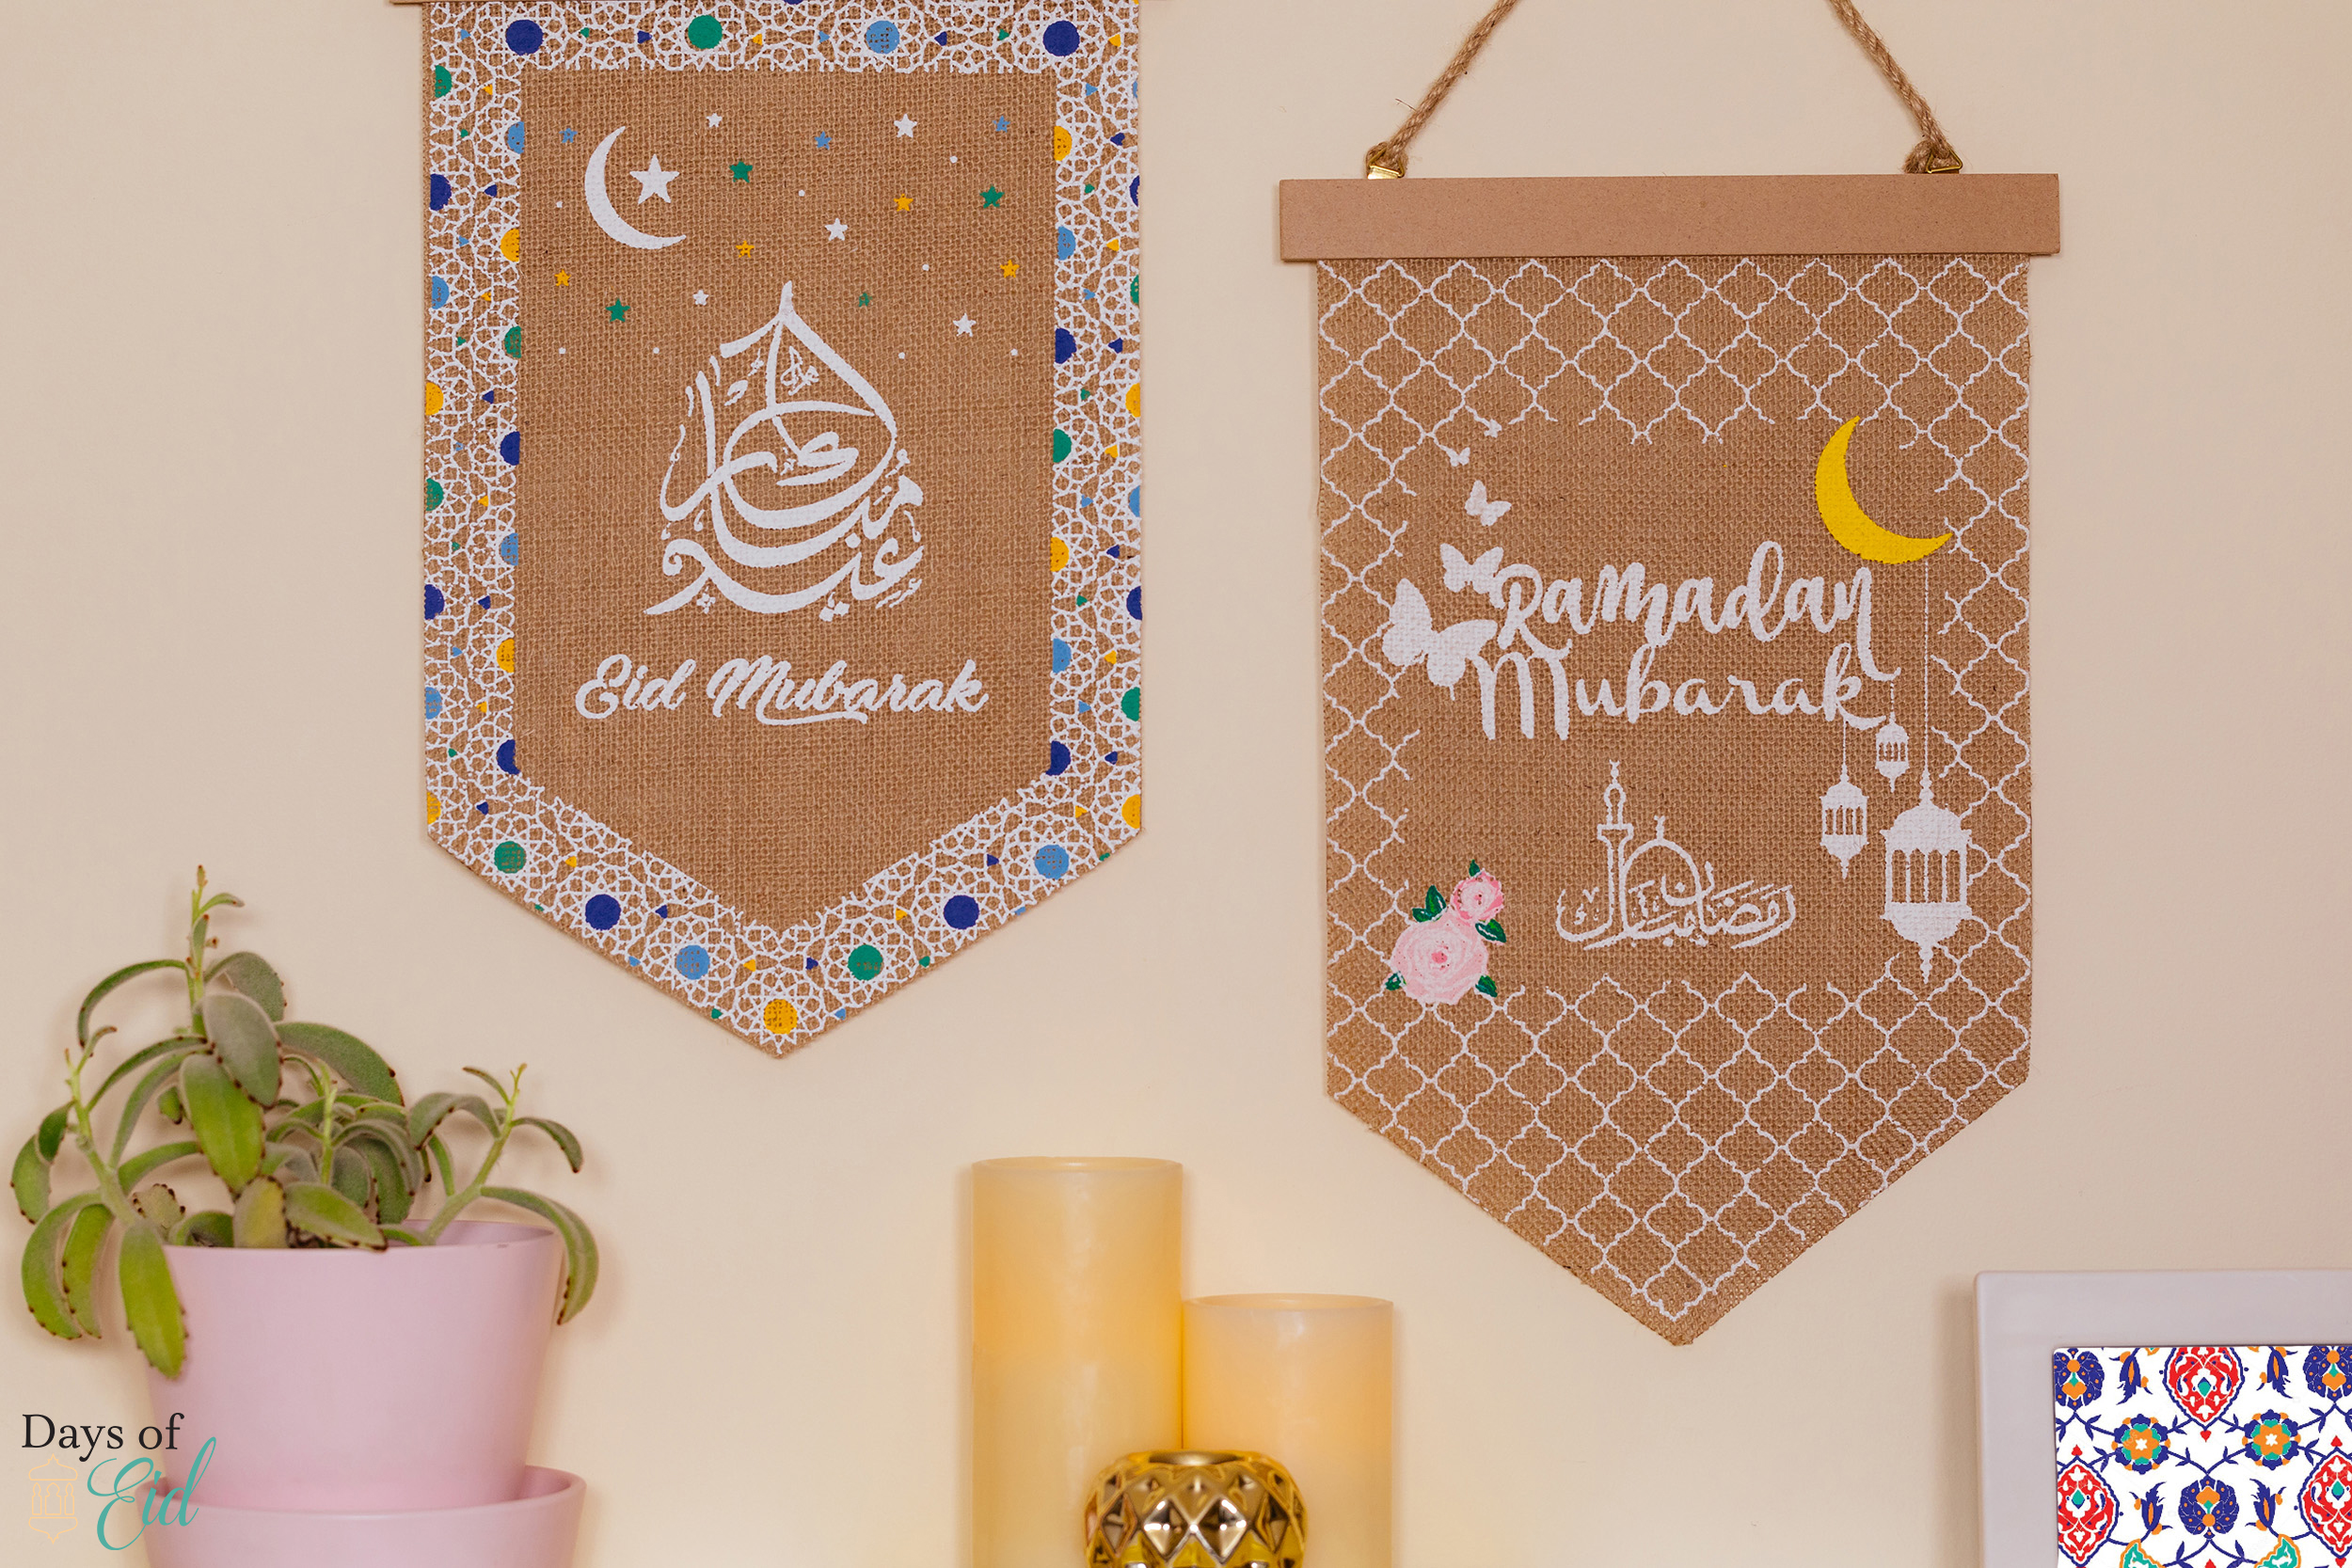 Ramadan-Decor-Unique-Decorations-Days-of-Eid-Pennants-3.jpg